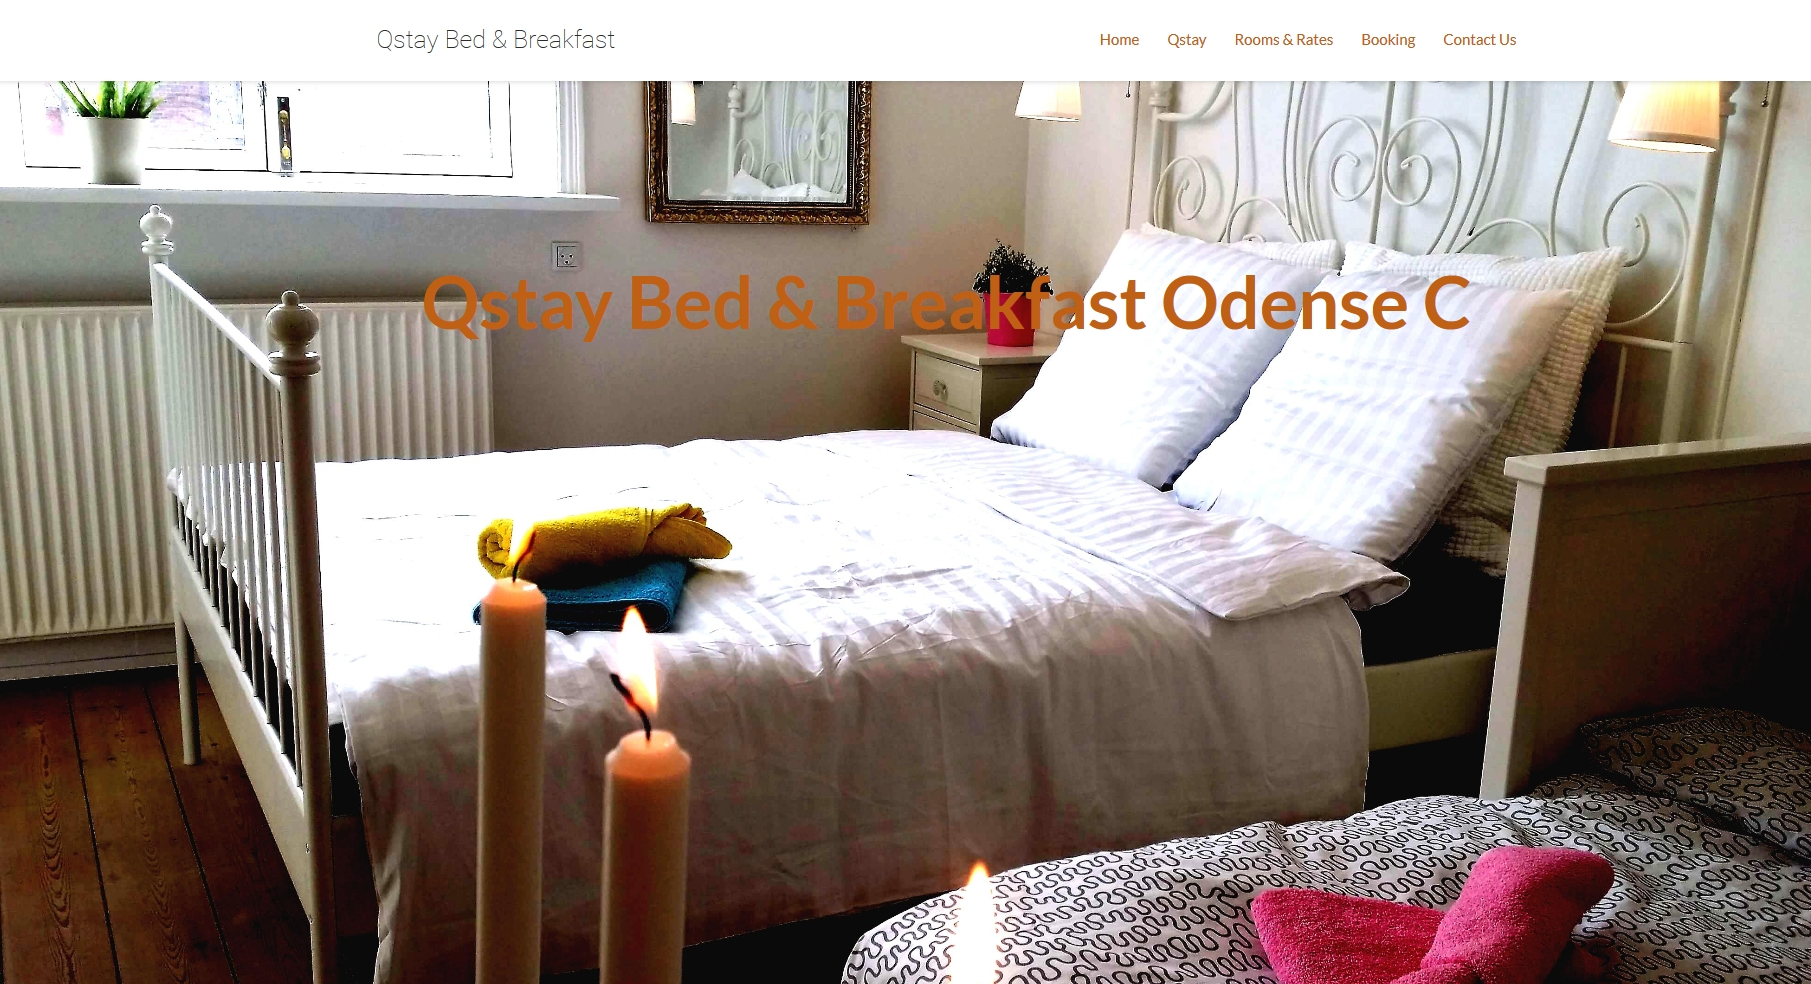 Qstay Bed & Breakfast